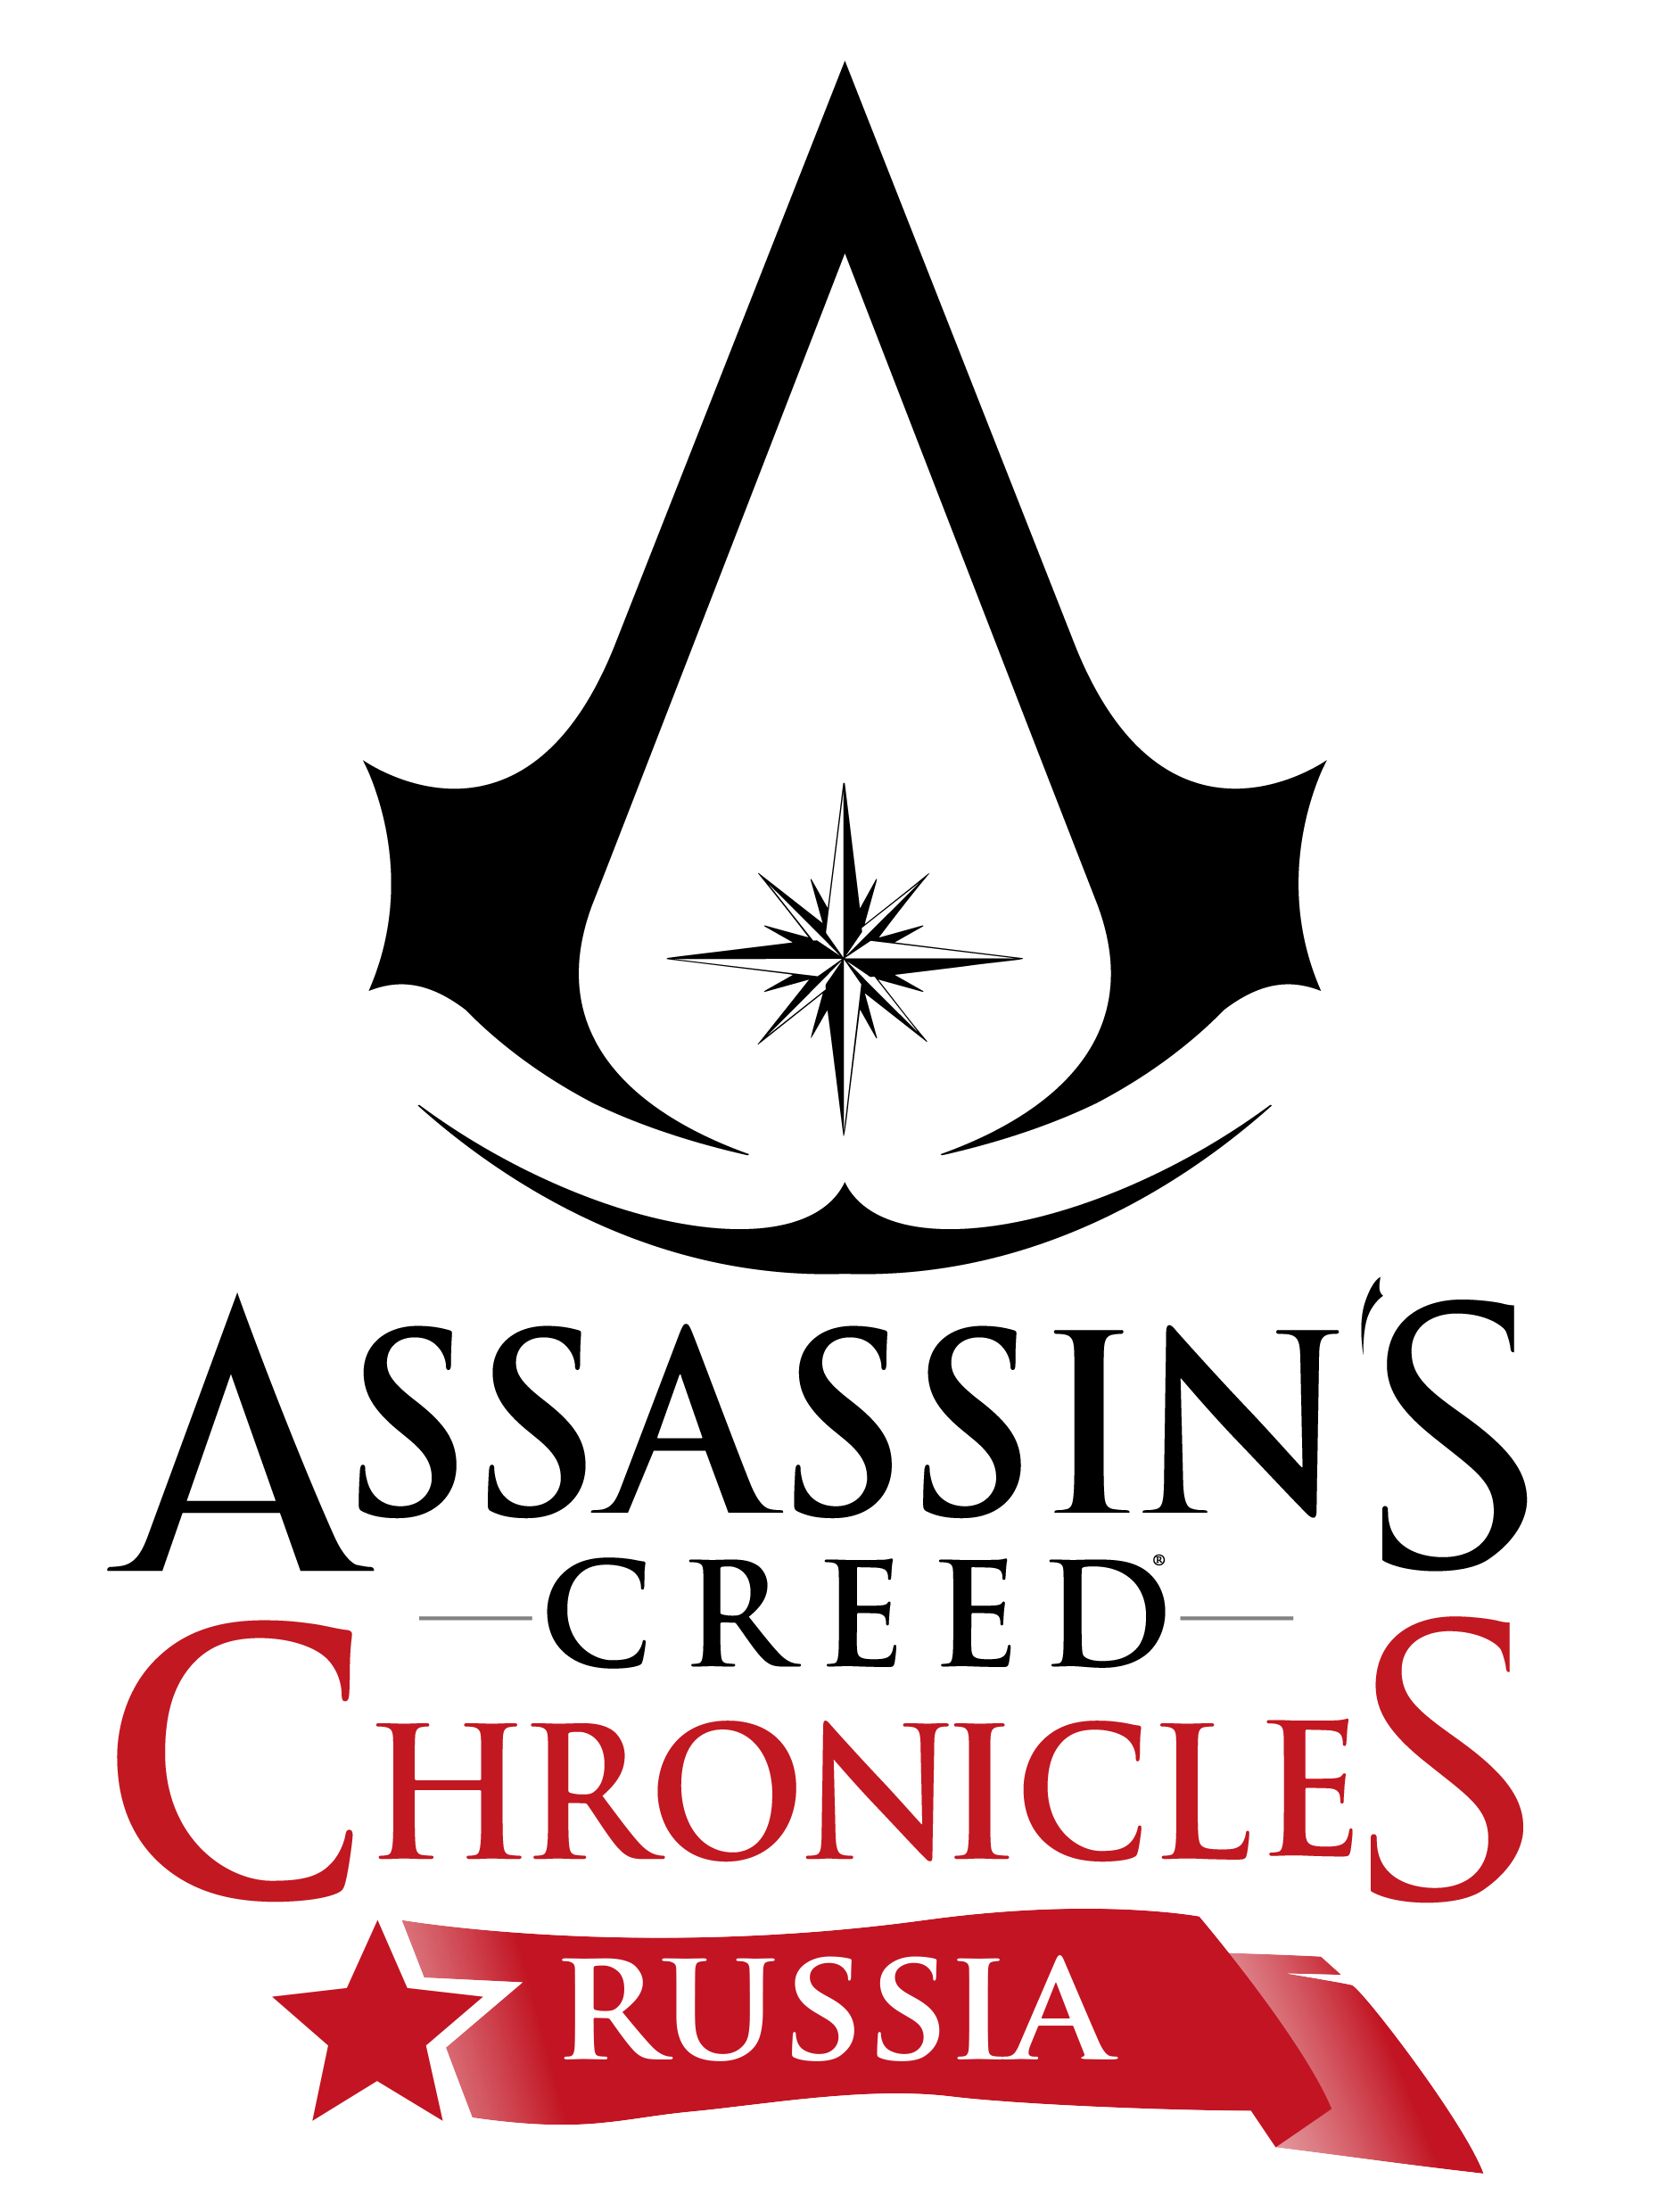 Assassin S Creed Chronicles Russia Offizielles Logo Assassin S